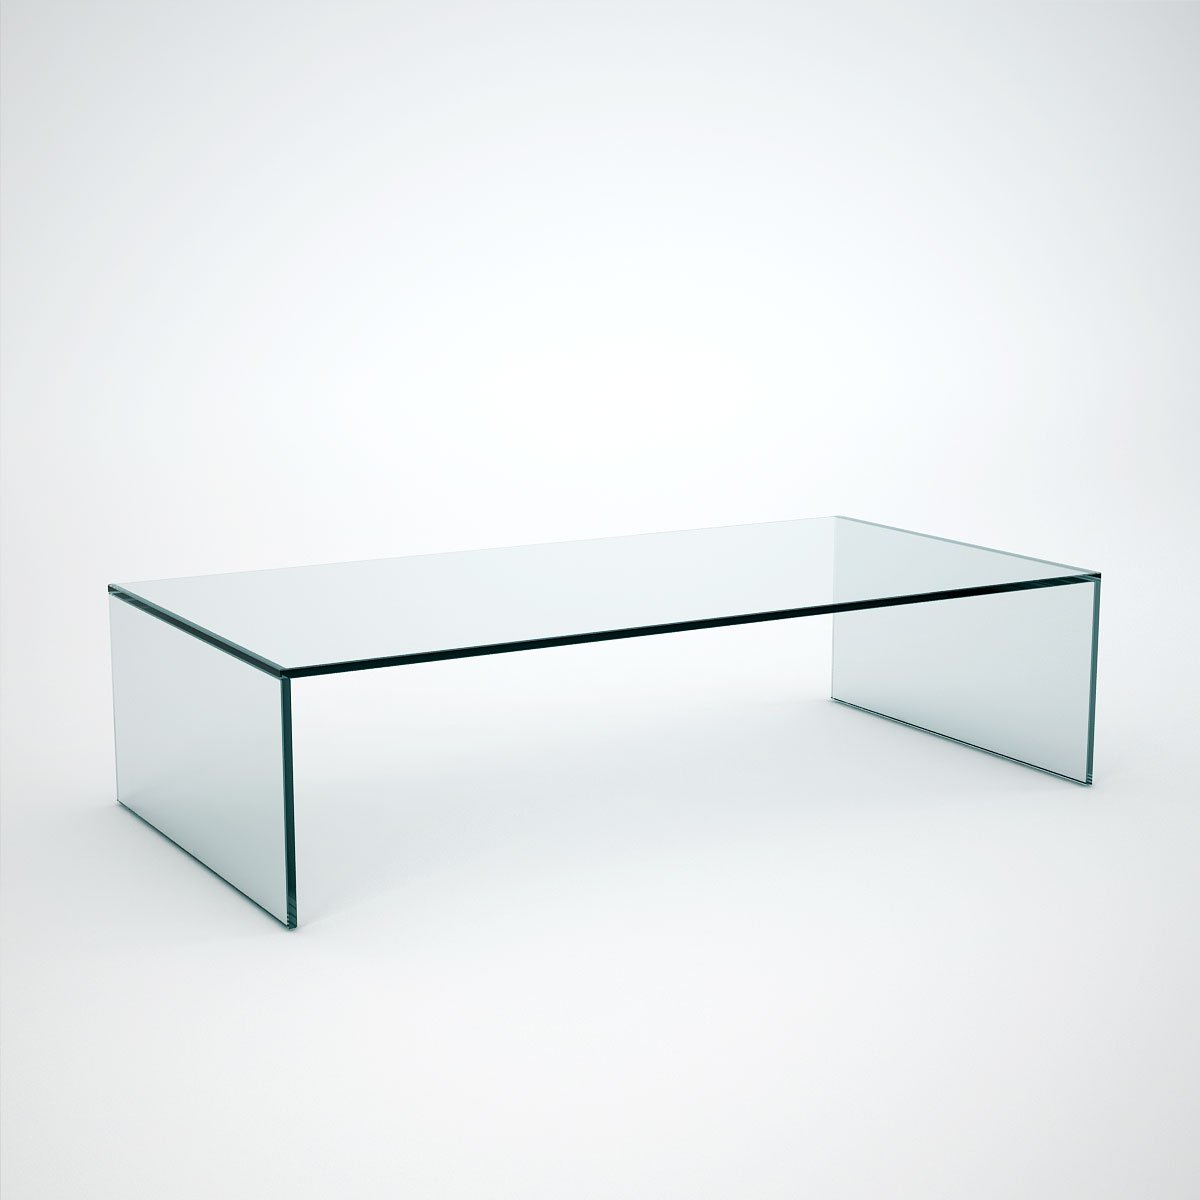 Judd rectangle glass coffee table klarity glass furniture Coffee tables glass